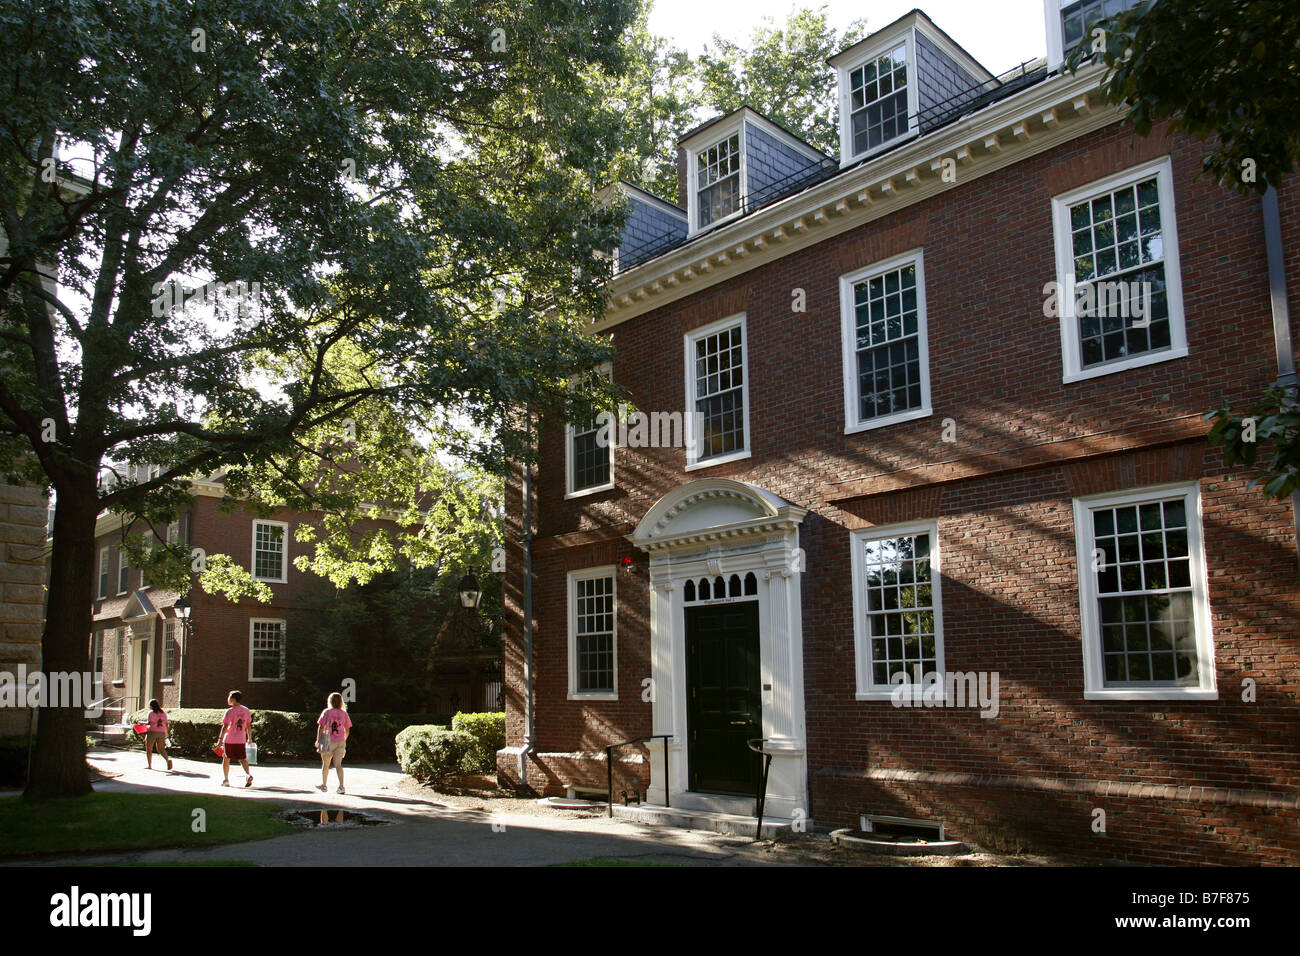 Accommodations, Harvard University, Cambridge, Massachusetts, USA - Stock Image